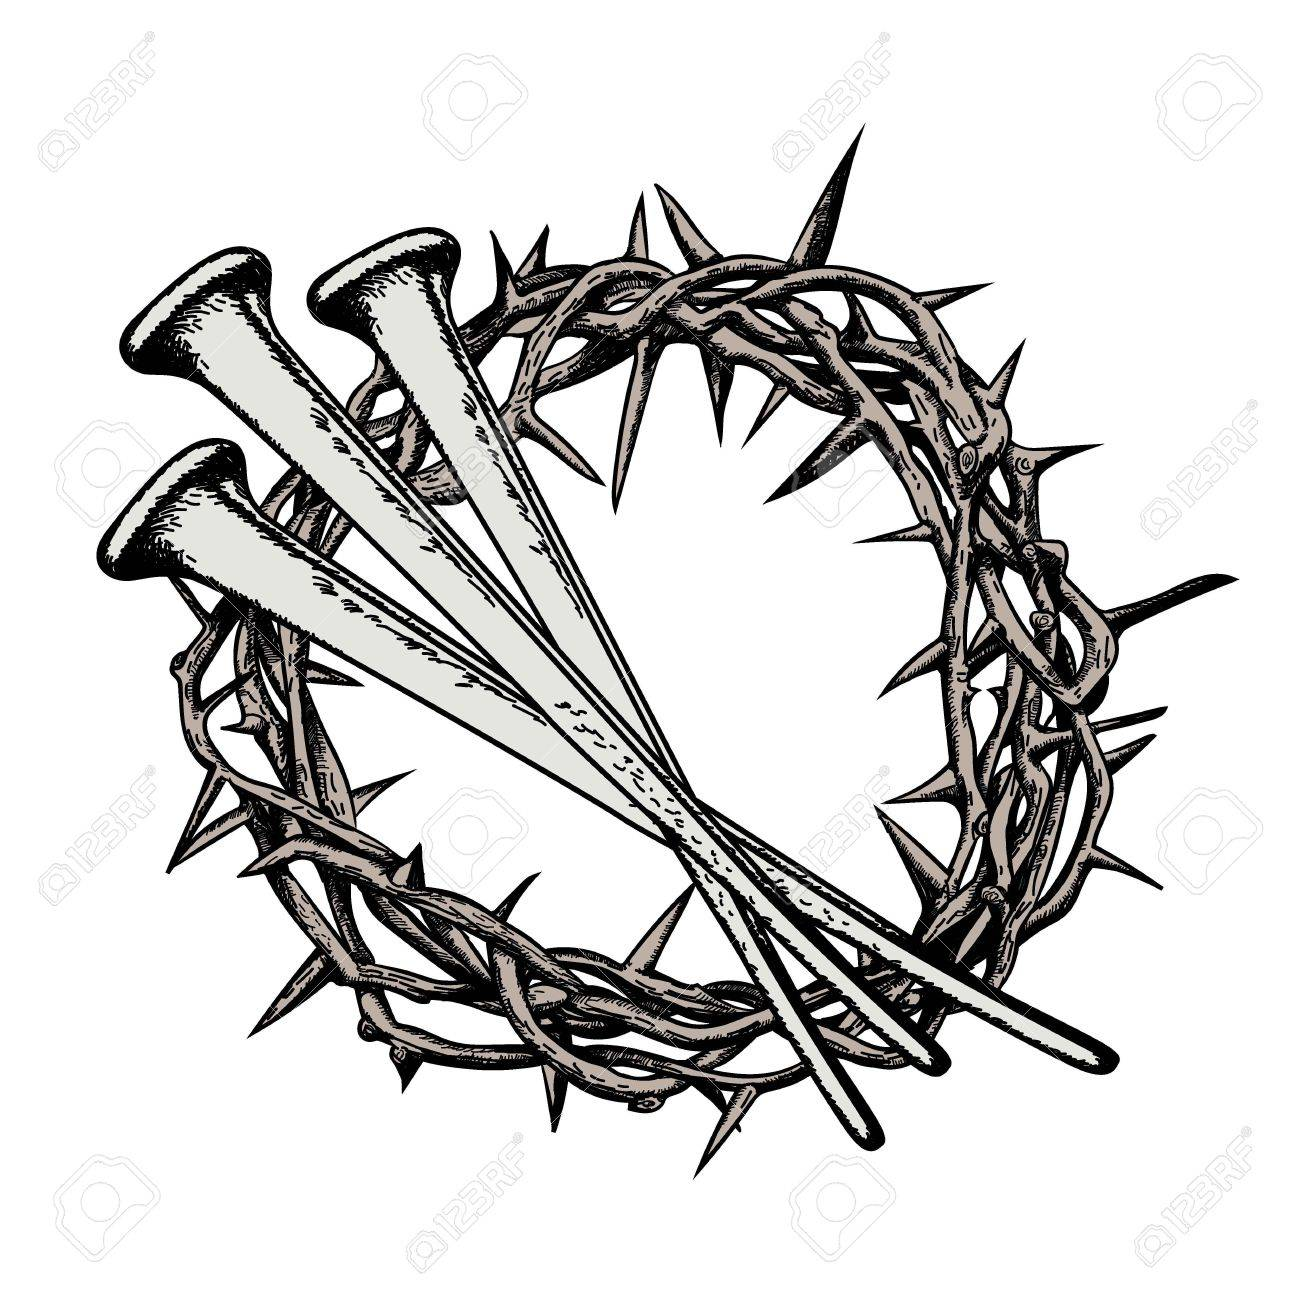 the crown of thorns with the nails of jesus christ symbols of rh 123rf com